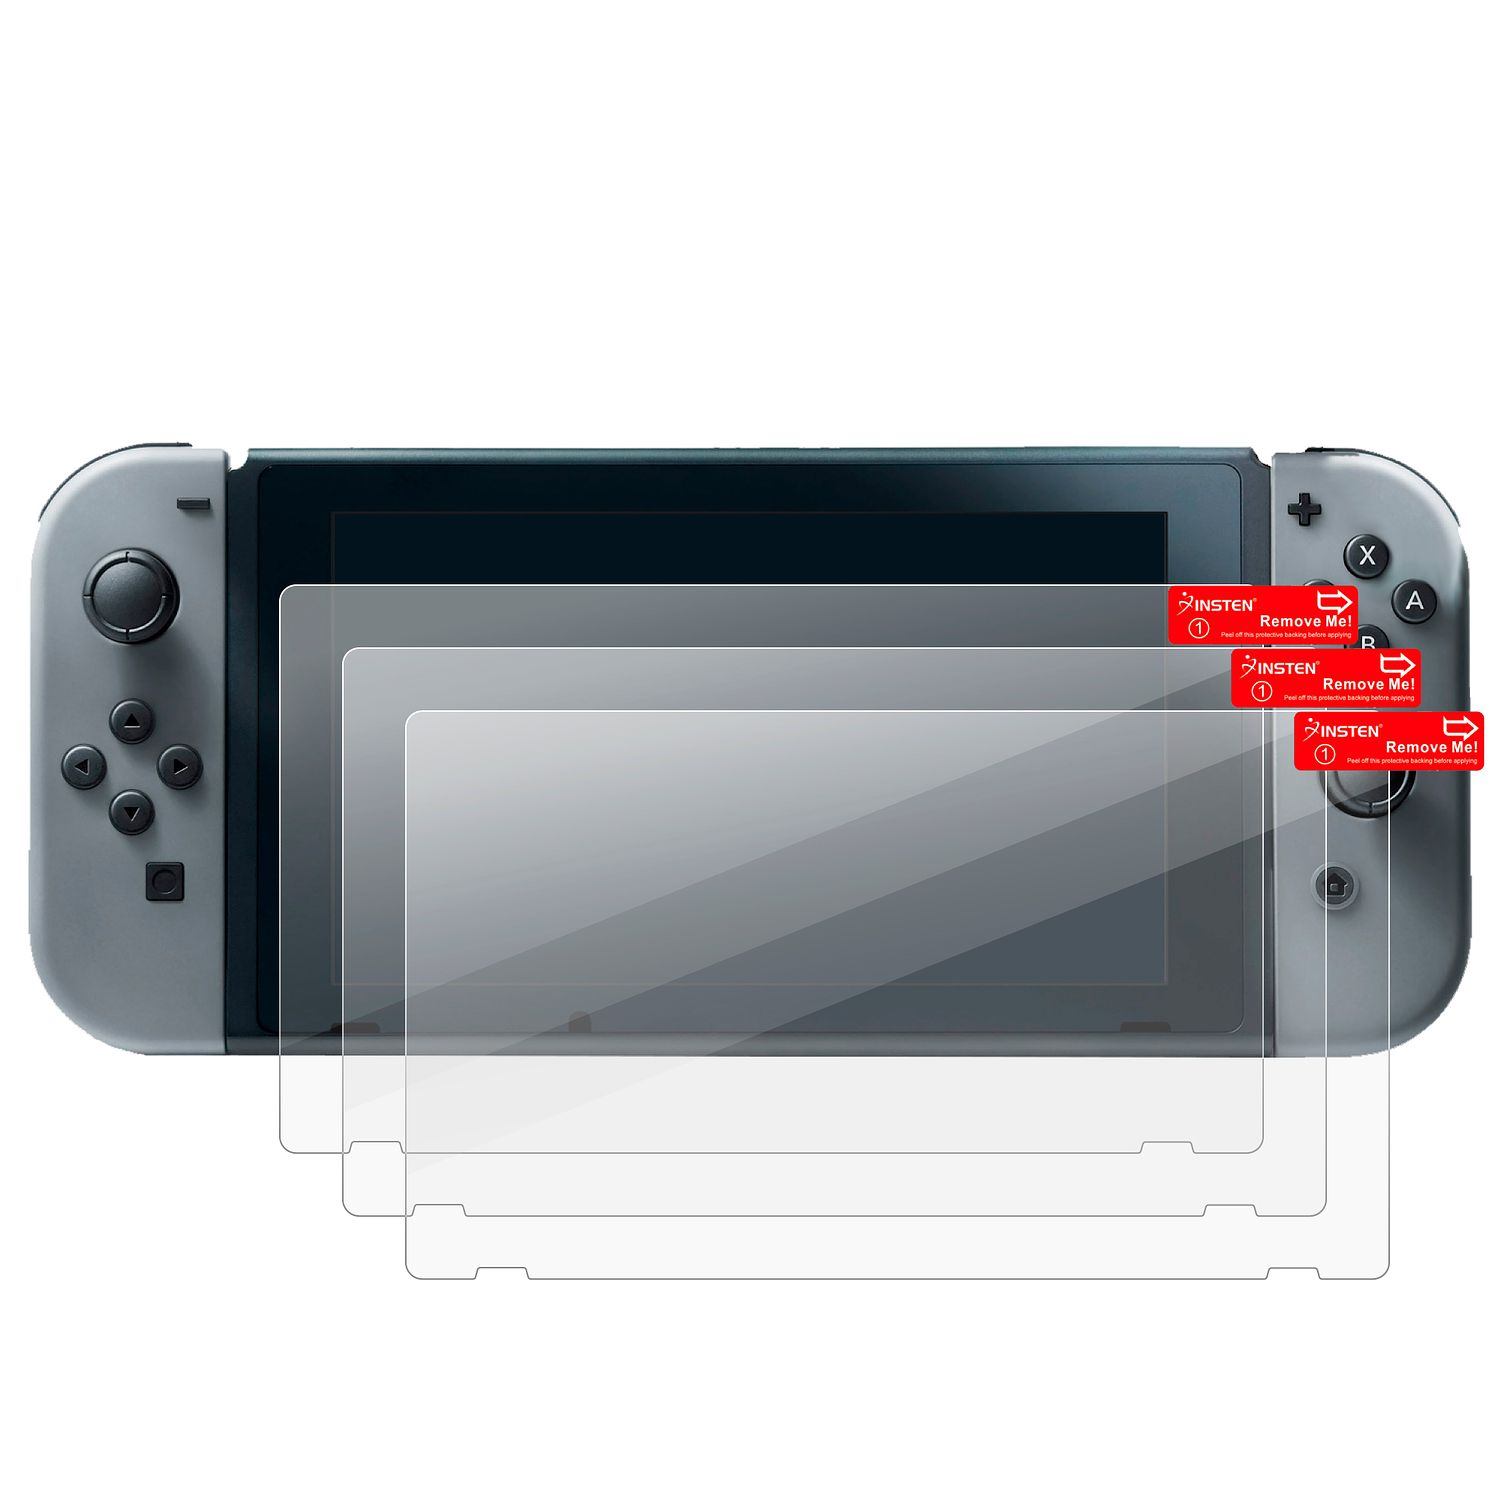 Nintendo Switch Case with Screen Protector 6in1 Bundle, by Insten Carry Travel Hard Case + Joy-Con Controller Skin [Left BLACK/Right RED] + 3-pack LCD Guard + 2-pair Thumbstick Cap for Nintendo Switch - image 5 of 6